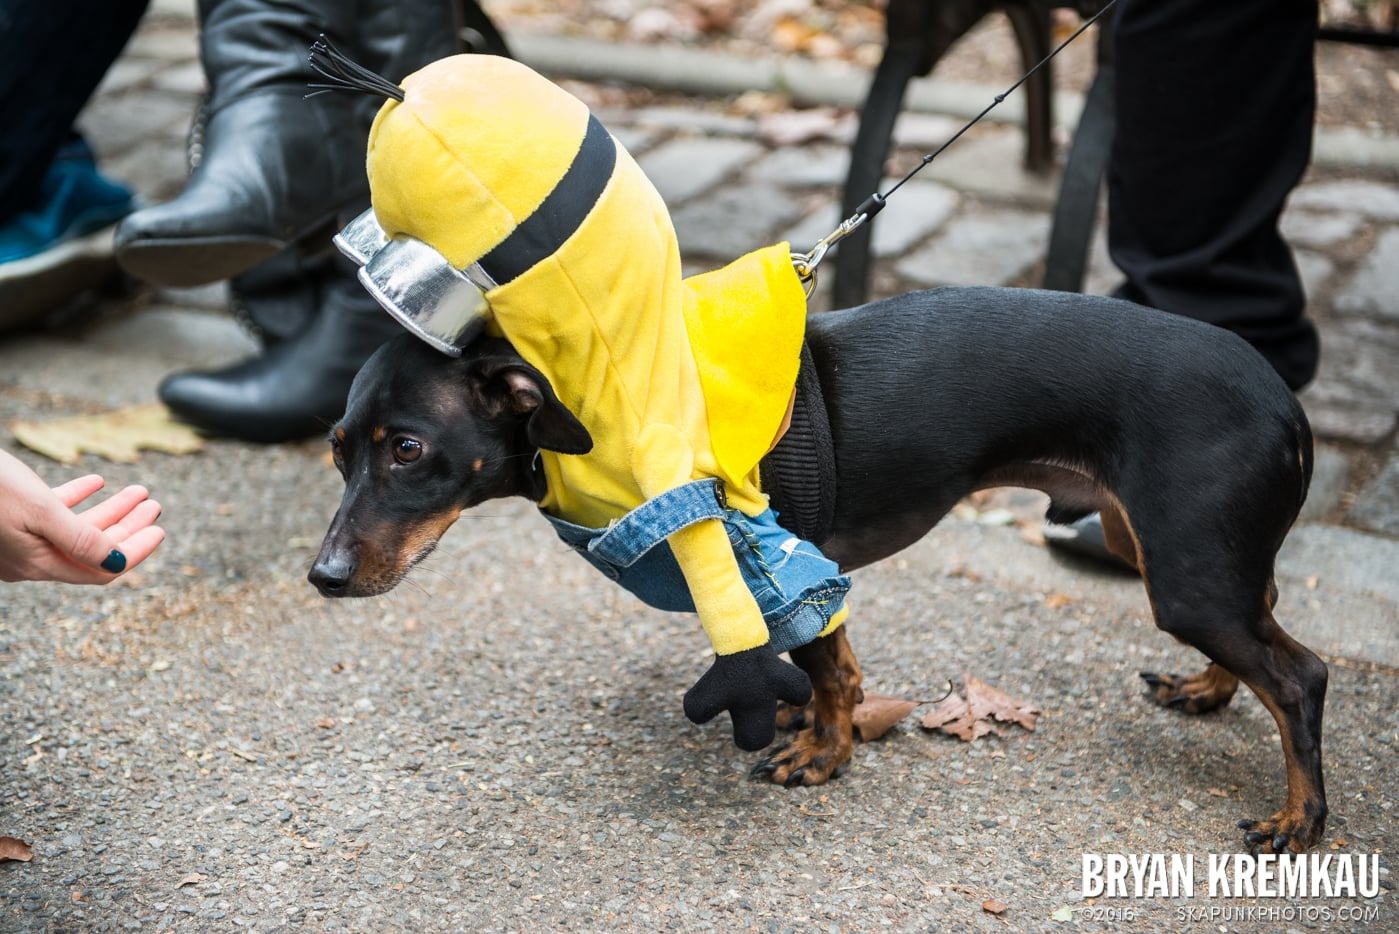 Tompkins Square Halloween Dog Parade 2015 @ Tompkins Square Park, NYC – 10.24.15 (55)